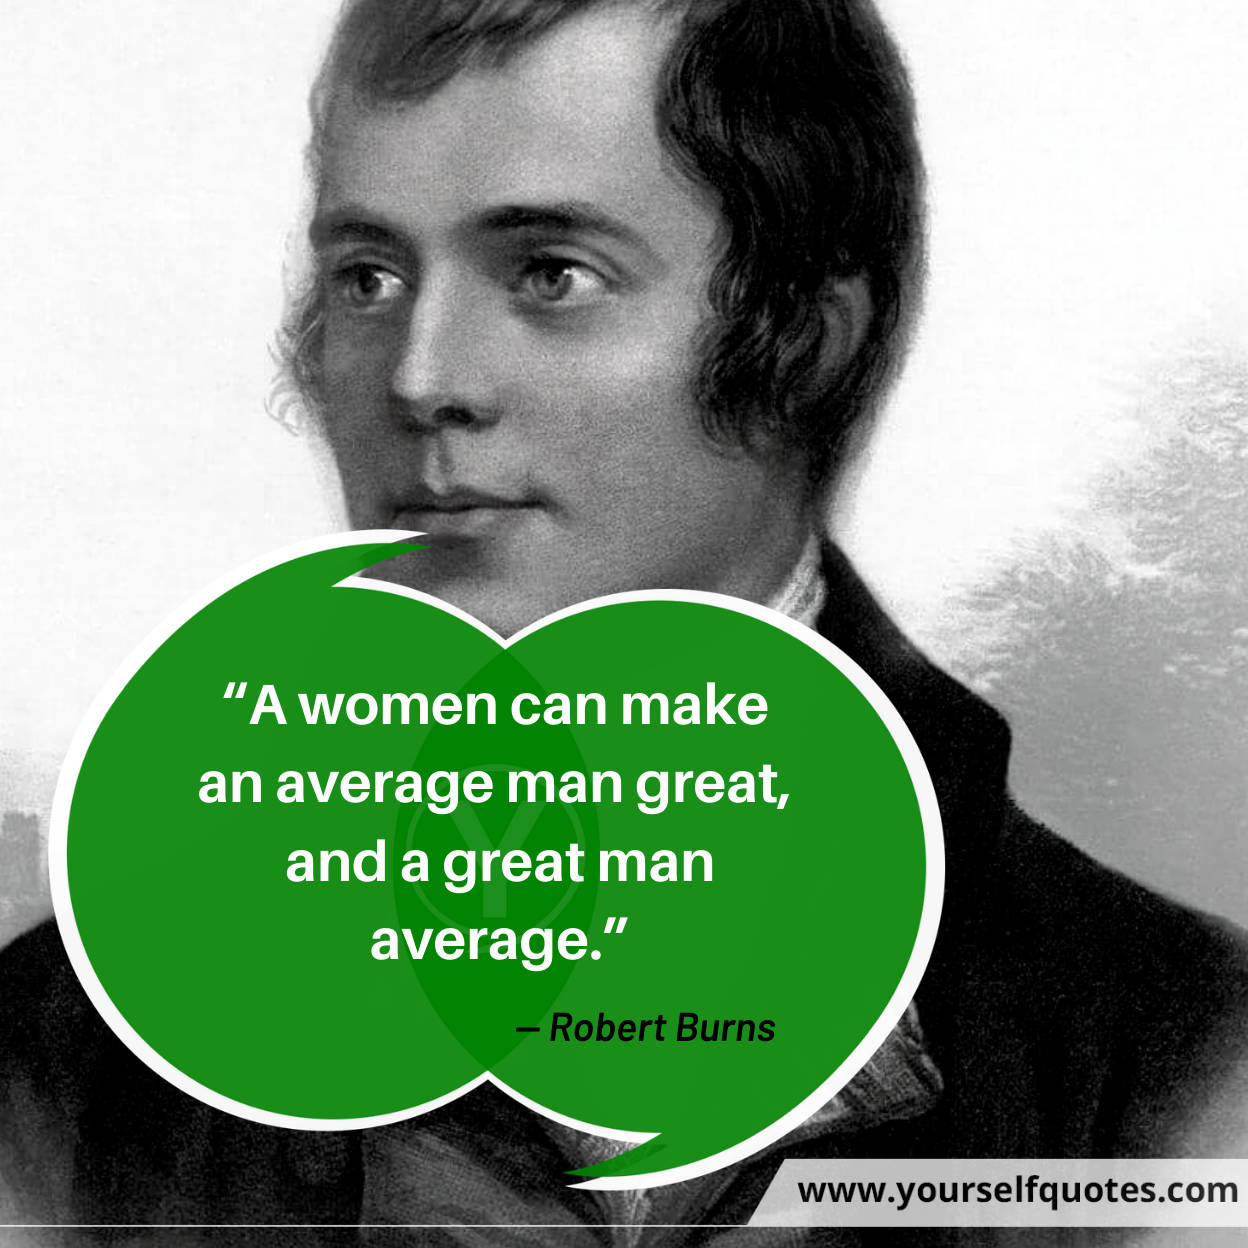 Best Robert Burns Quotes Images